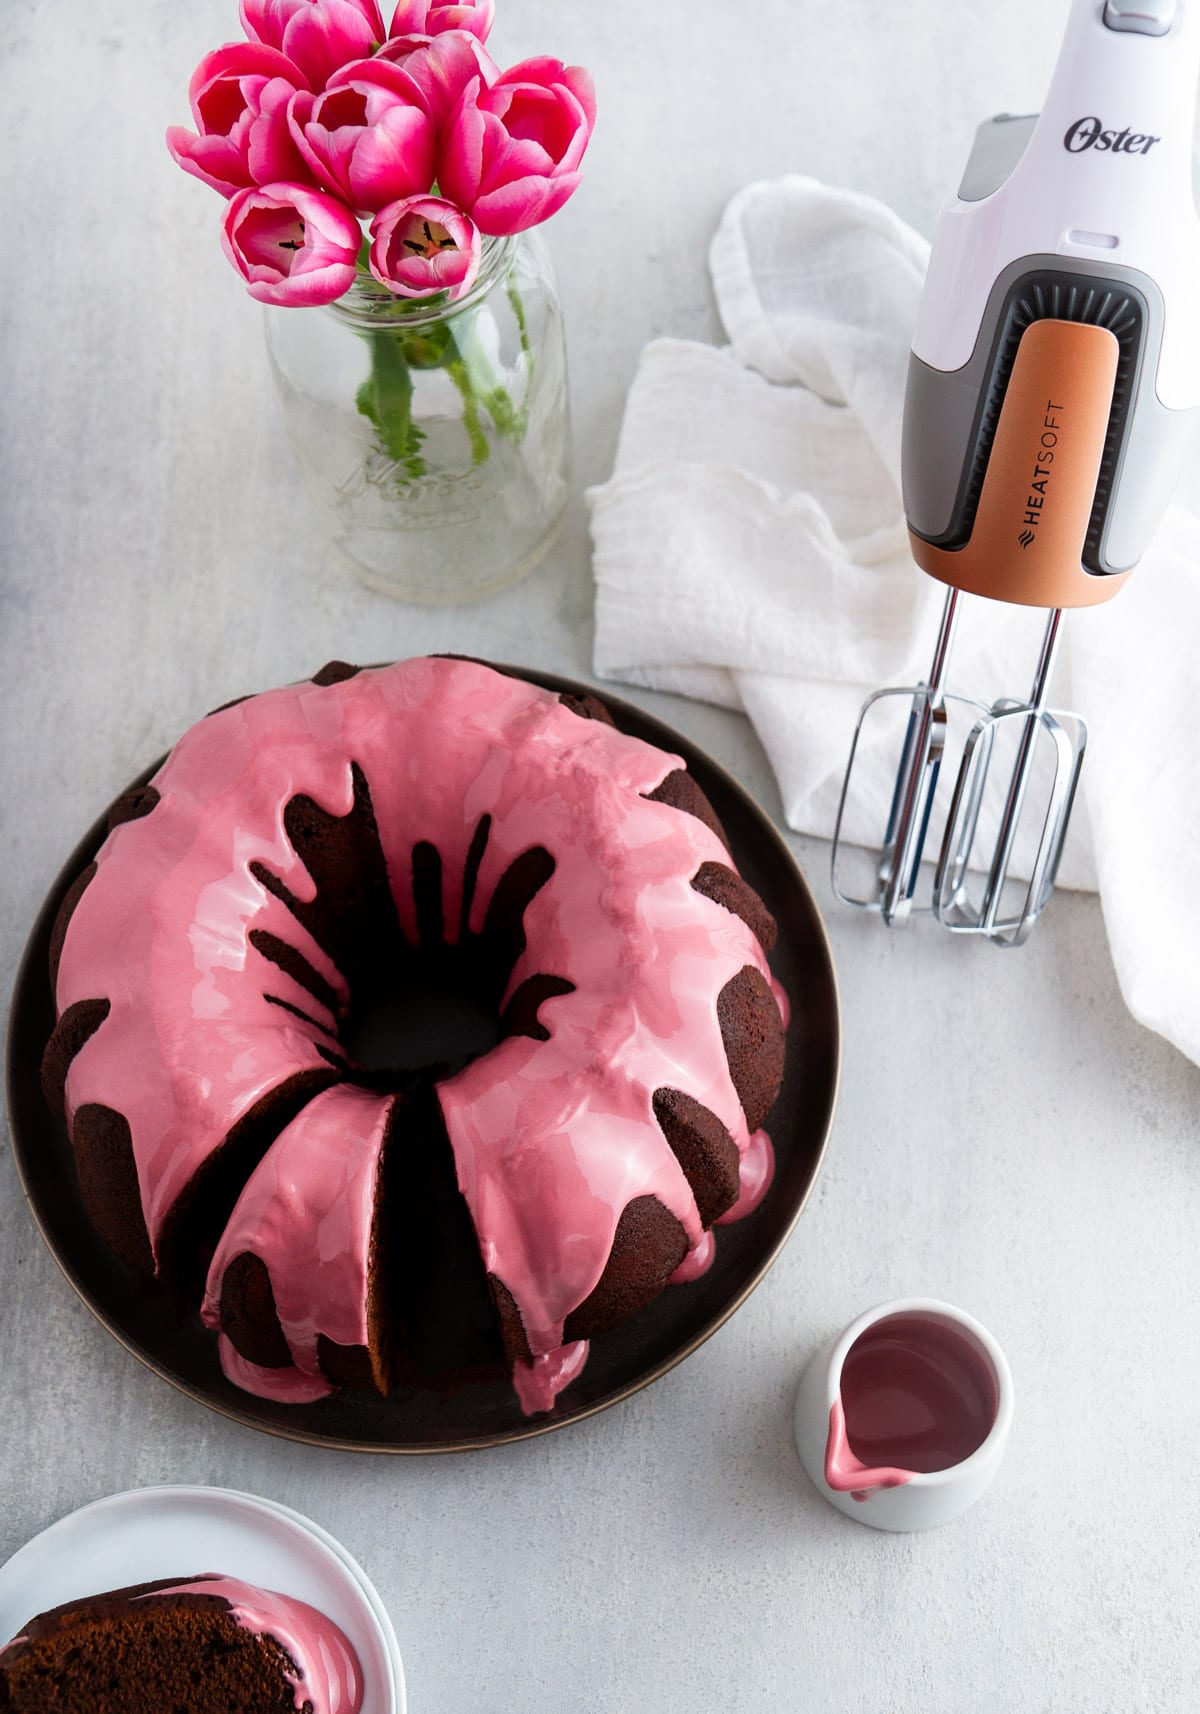 a chocolate bundt cake with ruby chocolate glaze on a plate with a hand mixer and flowers next to it